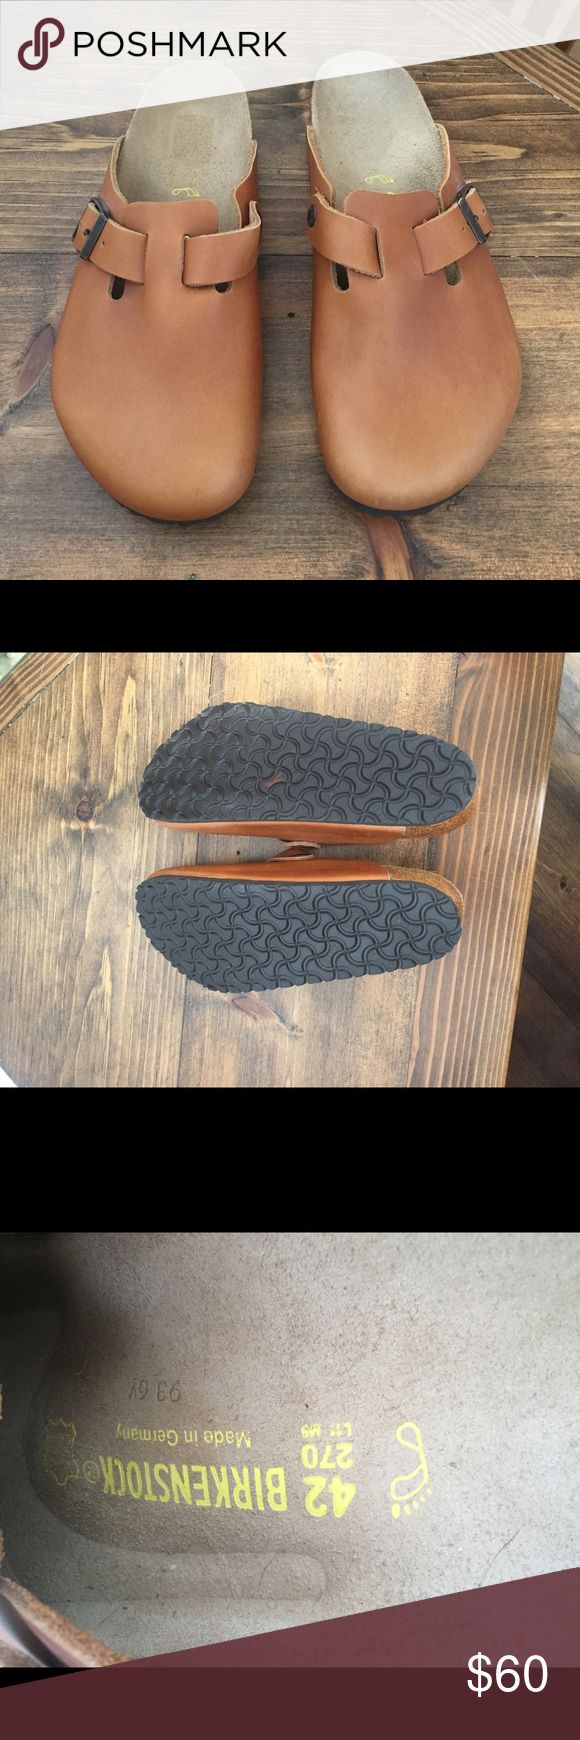 Birkenstocks Boston Clogs Great shoes in amazing condition! Only worn a handful of times. Feel free to ask questions or shoot me an offer. Birkenstock Shoes Loafers & Slip-Ons